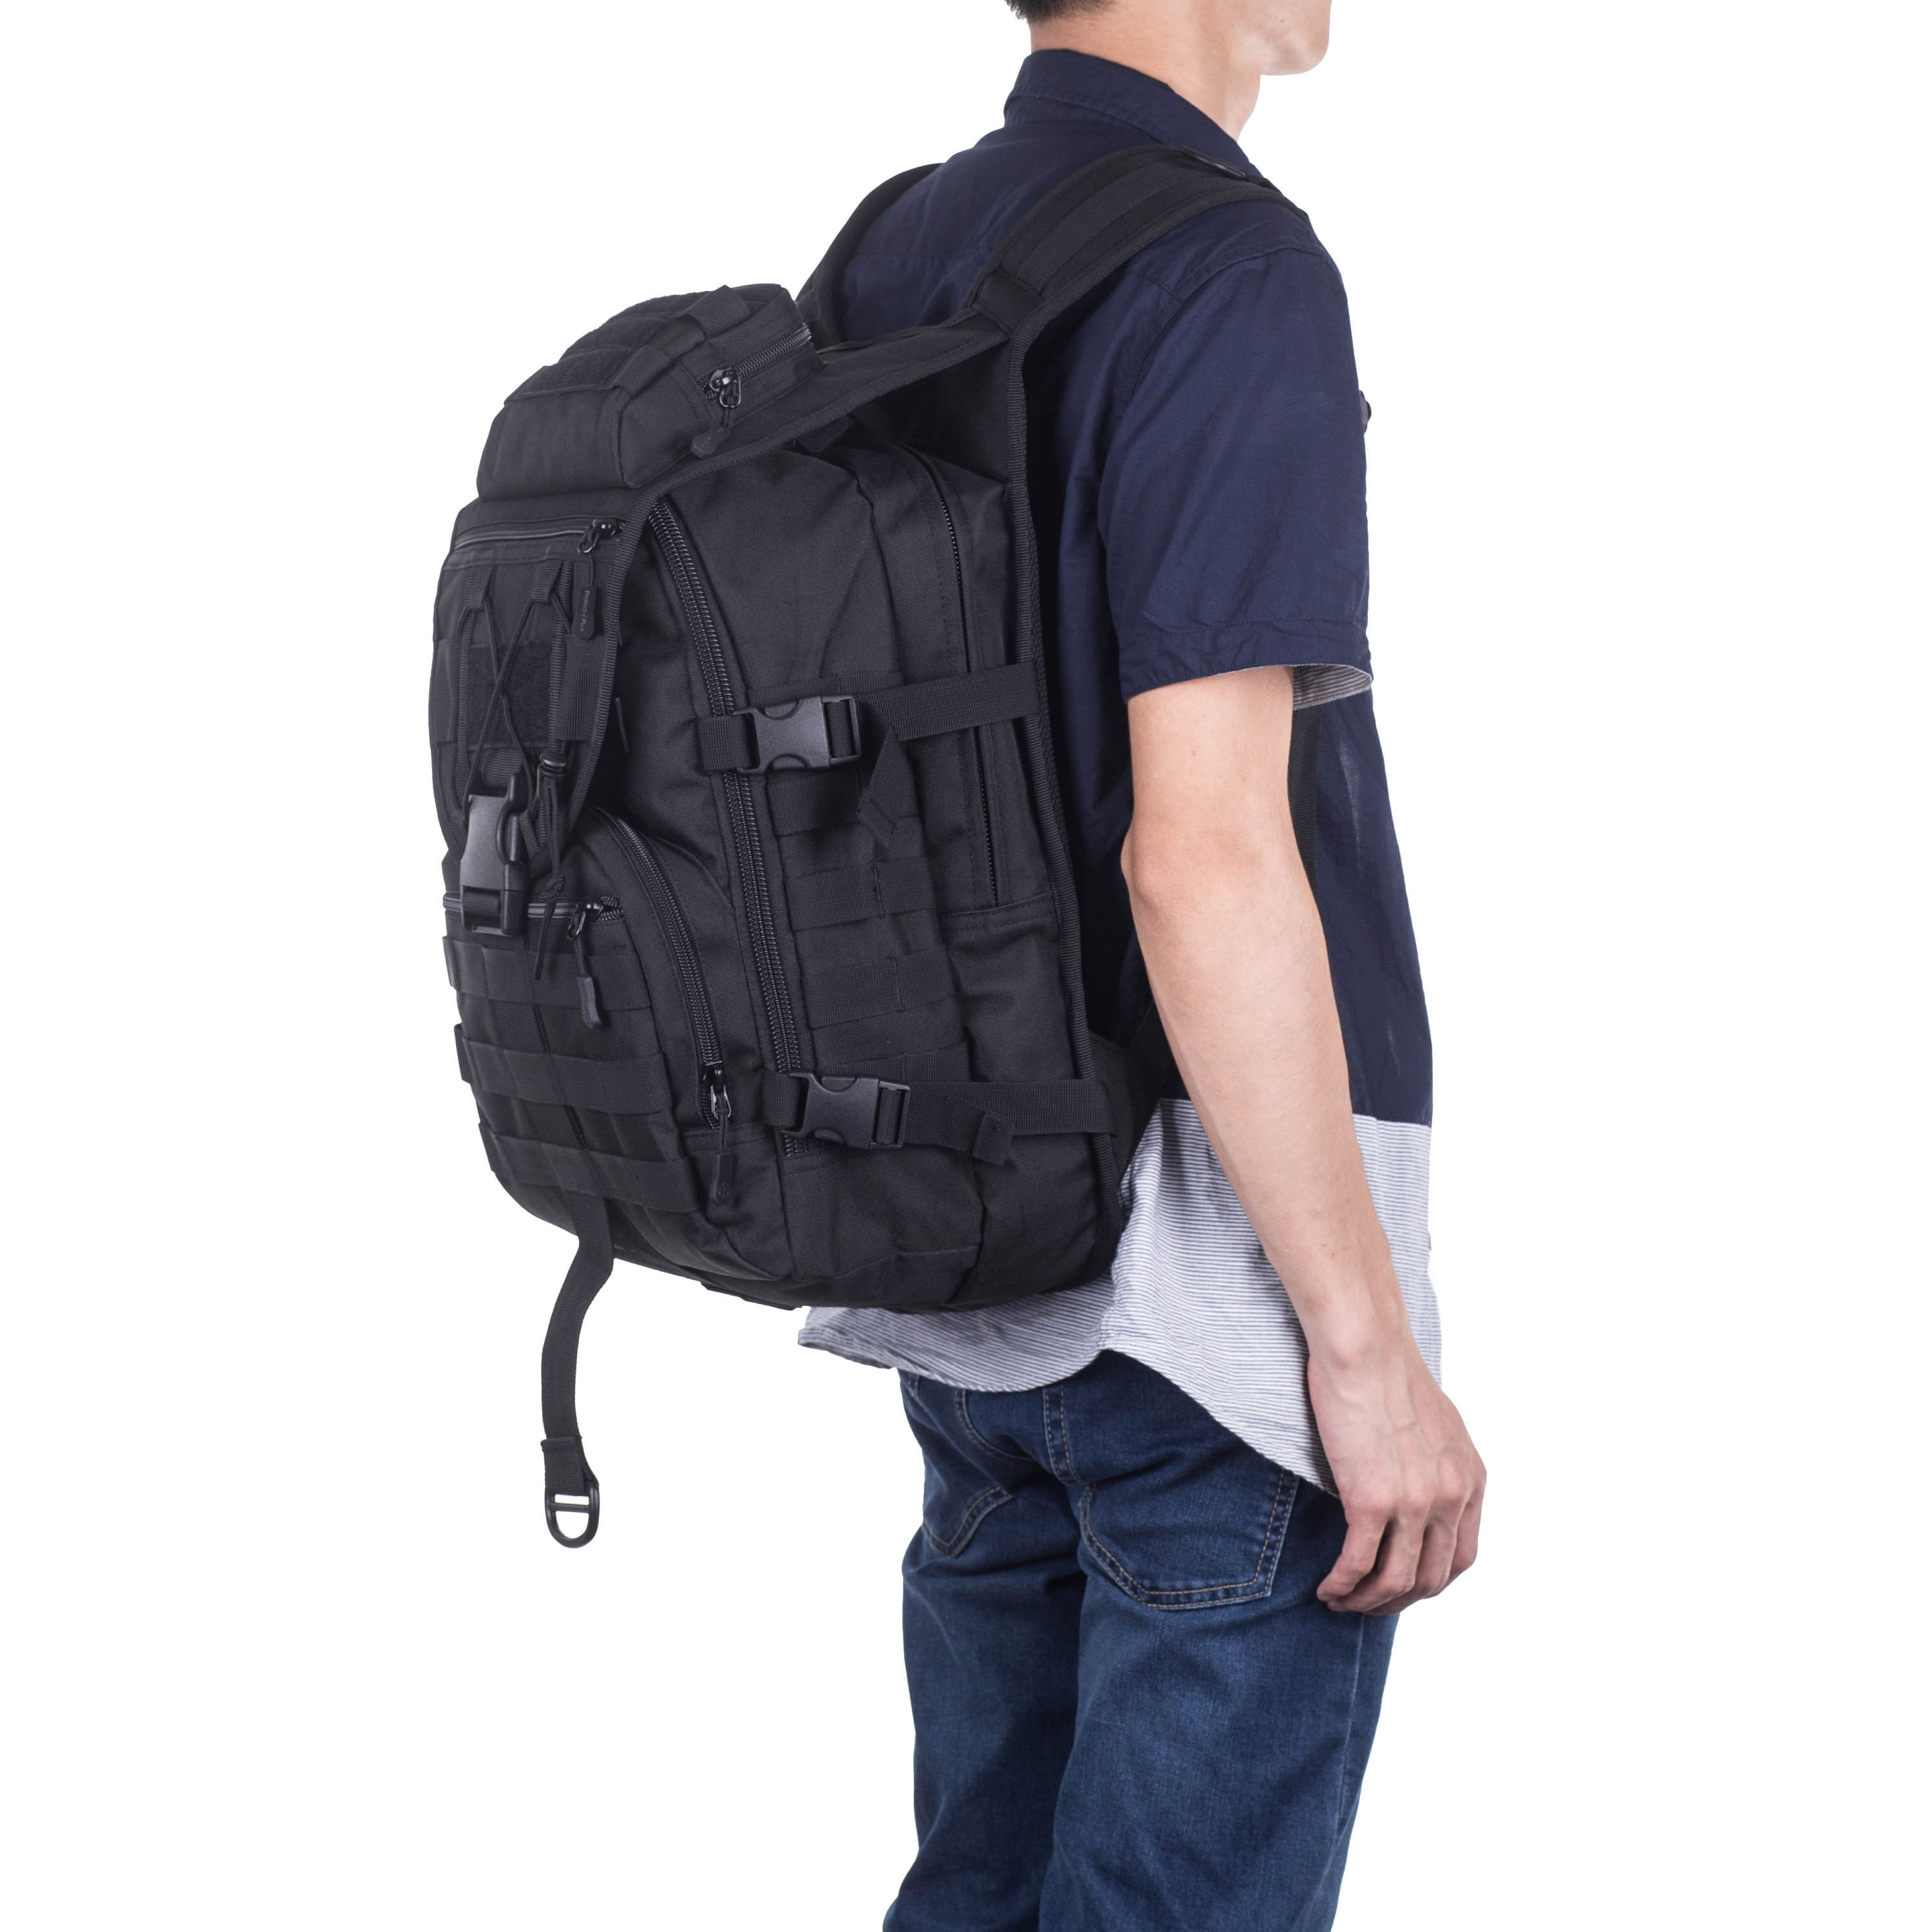 40L-Military-Tactical-Backpack-Assault-Pack-MOLLE-Bug-Out-Bag-Army-Backpack-Trek thumbnail 31